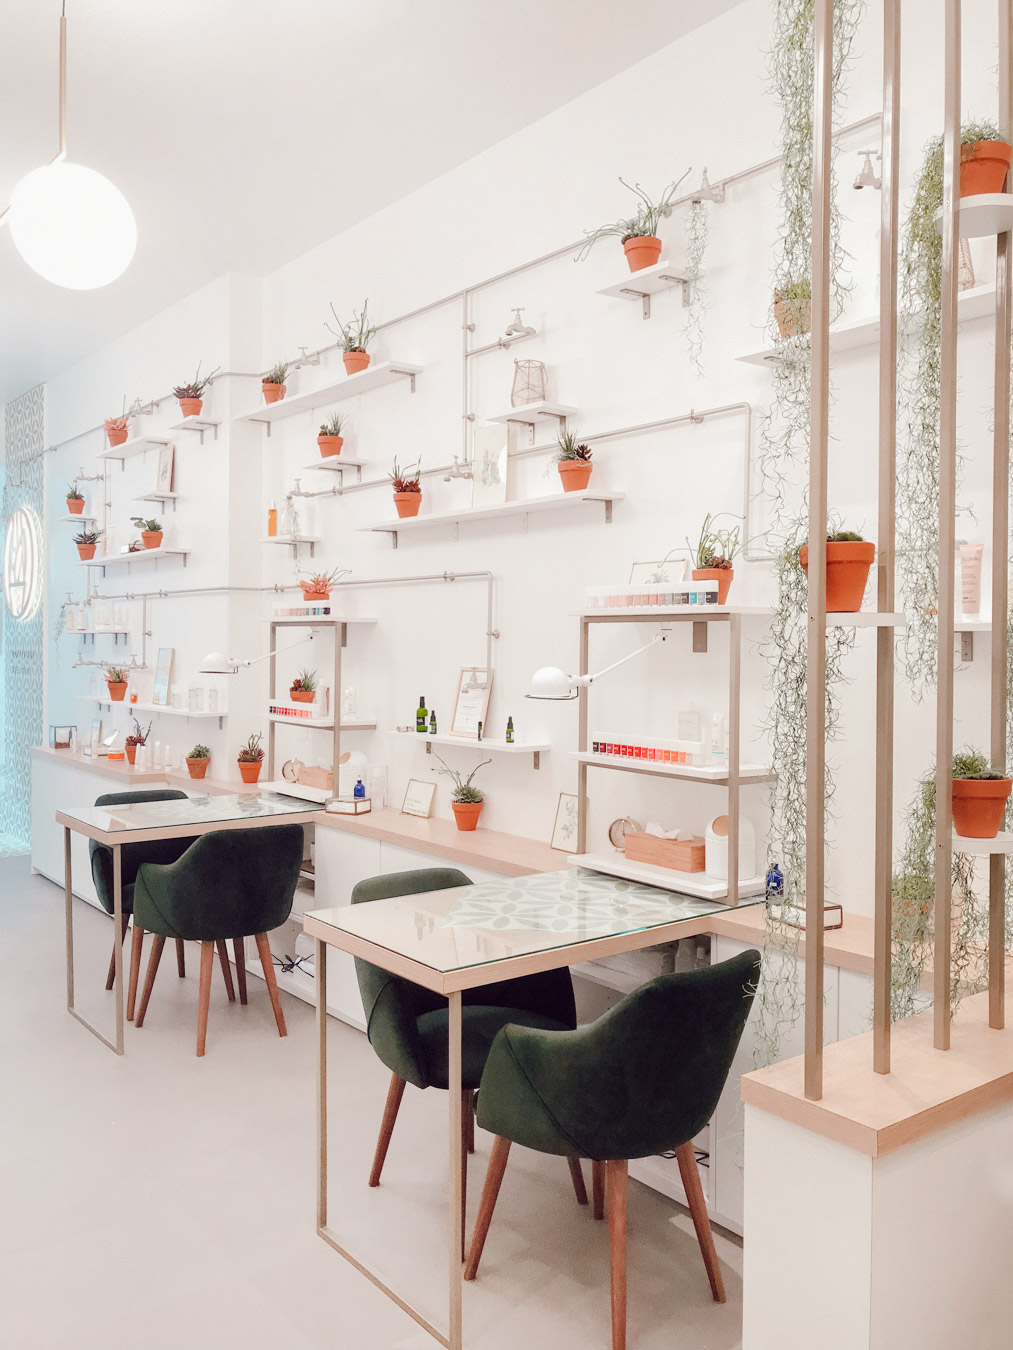 Blog-Mode-And-The-City-Lifestyle-Cinq-Petites-Choses-spa-bio-jardins-suspendus